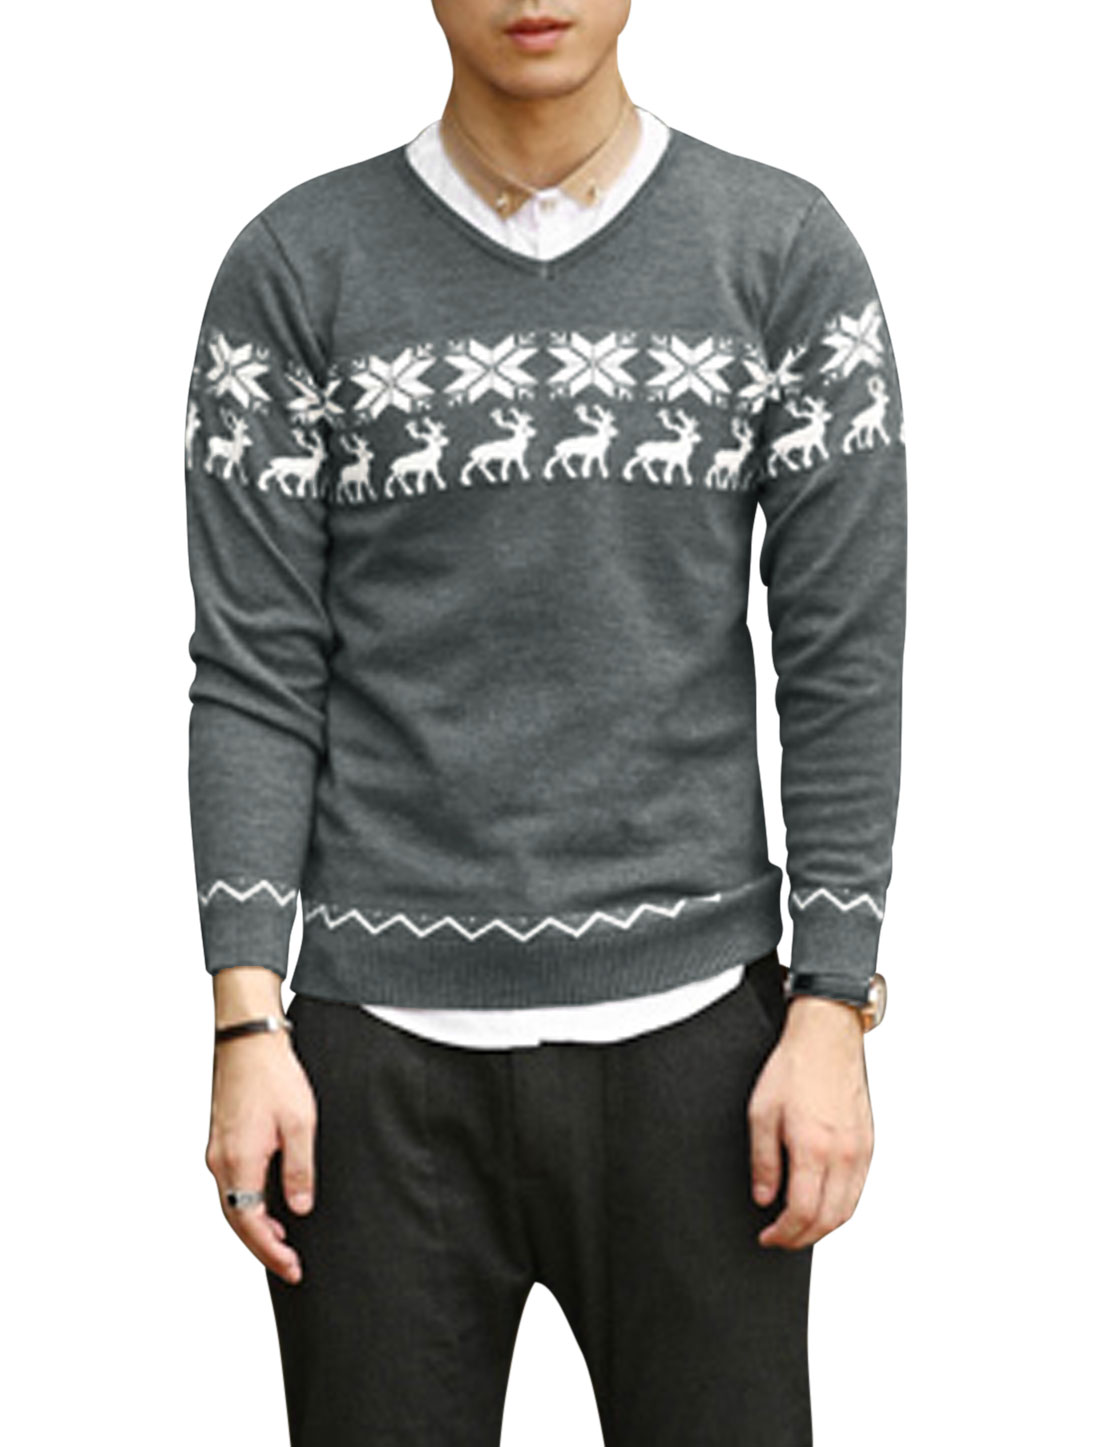 Ribbed Hem Deer Pattern Snowflake Pattern Casual Sweater for Men Gray M